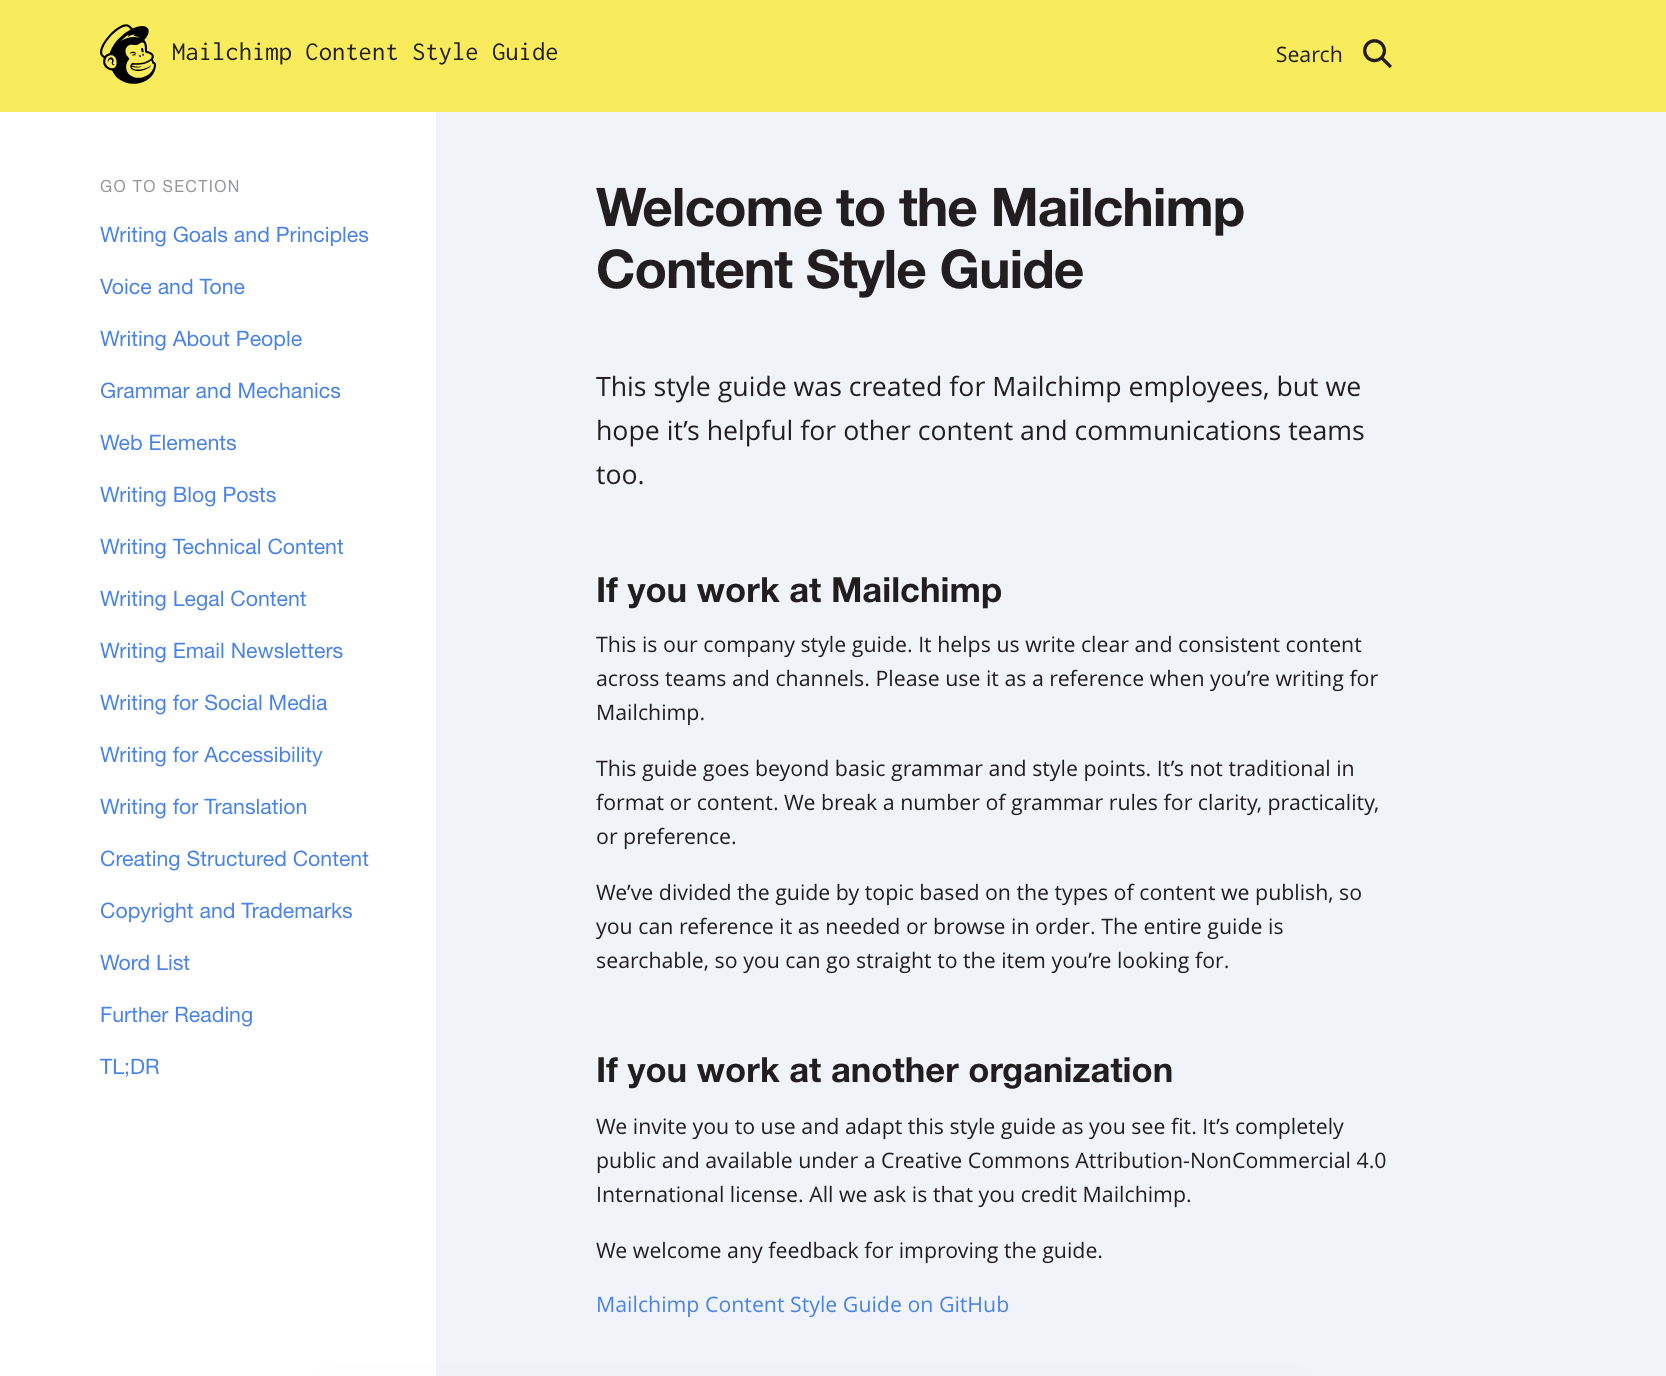 A screenshot of the Mailchimp content style guide homepage